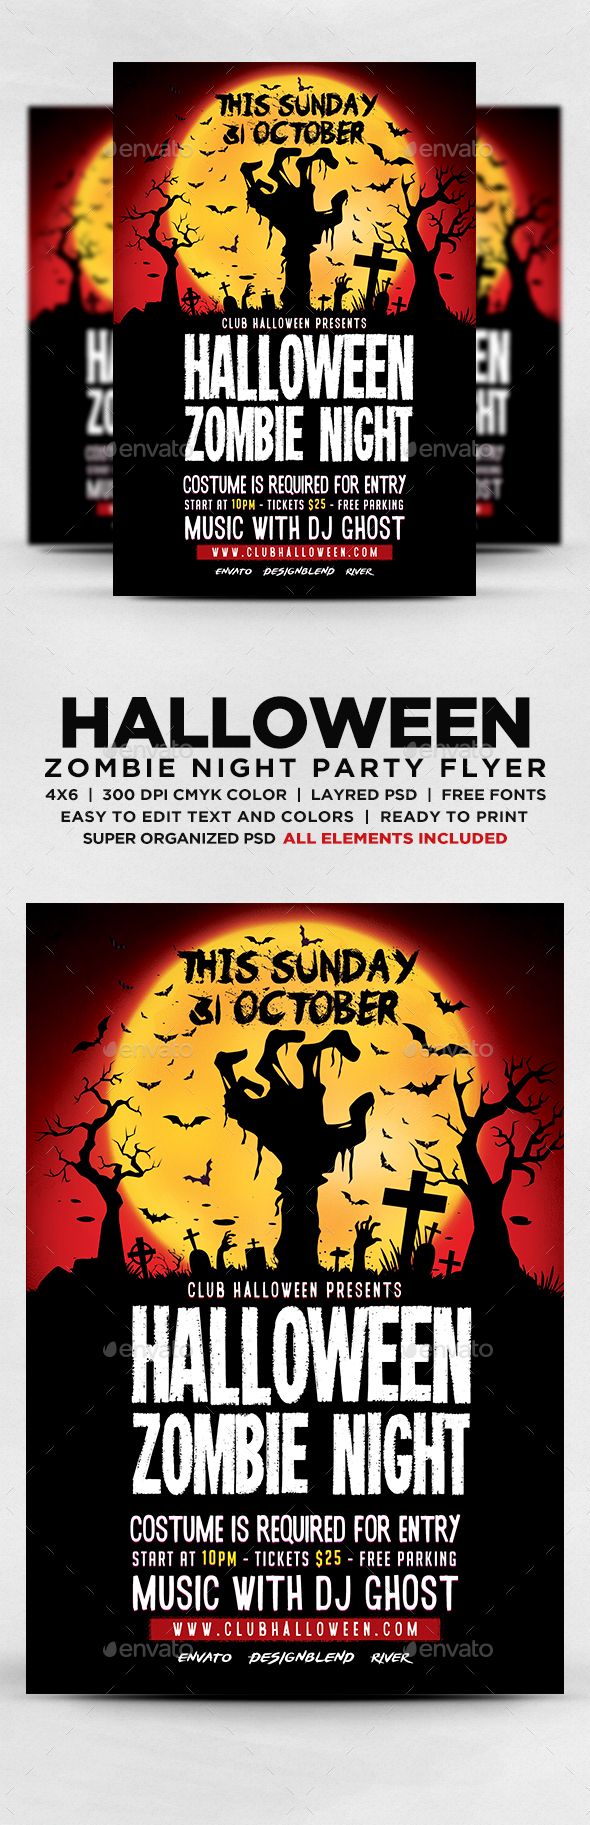 Halloween Zombie Night Flyer - Flyers Print Templates